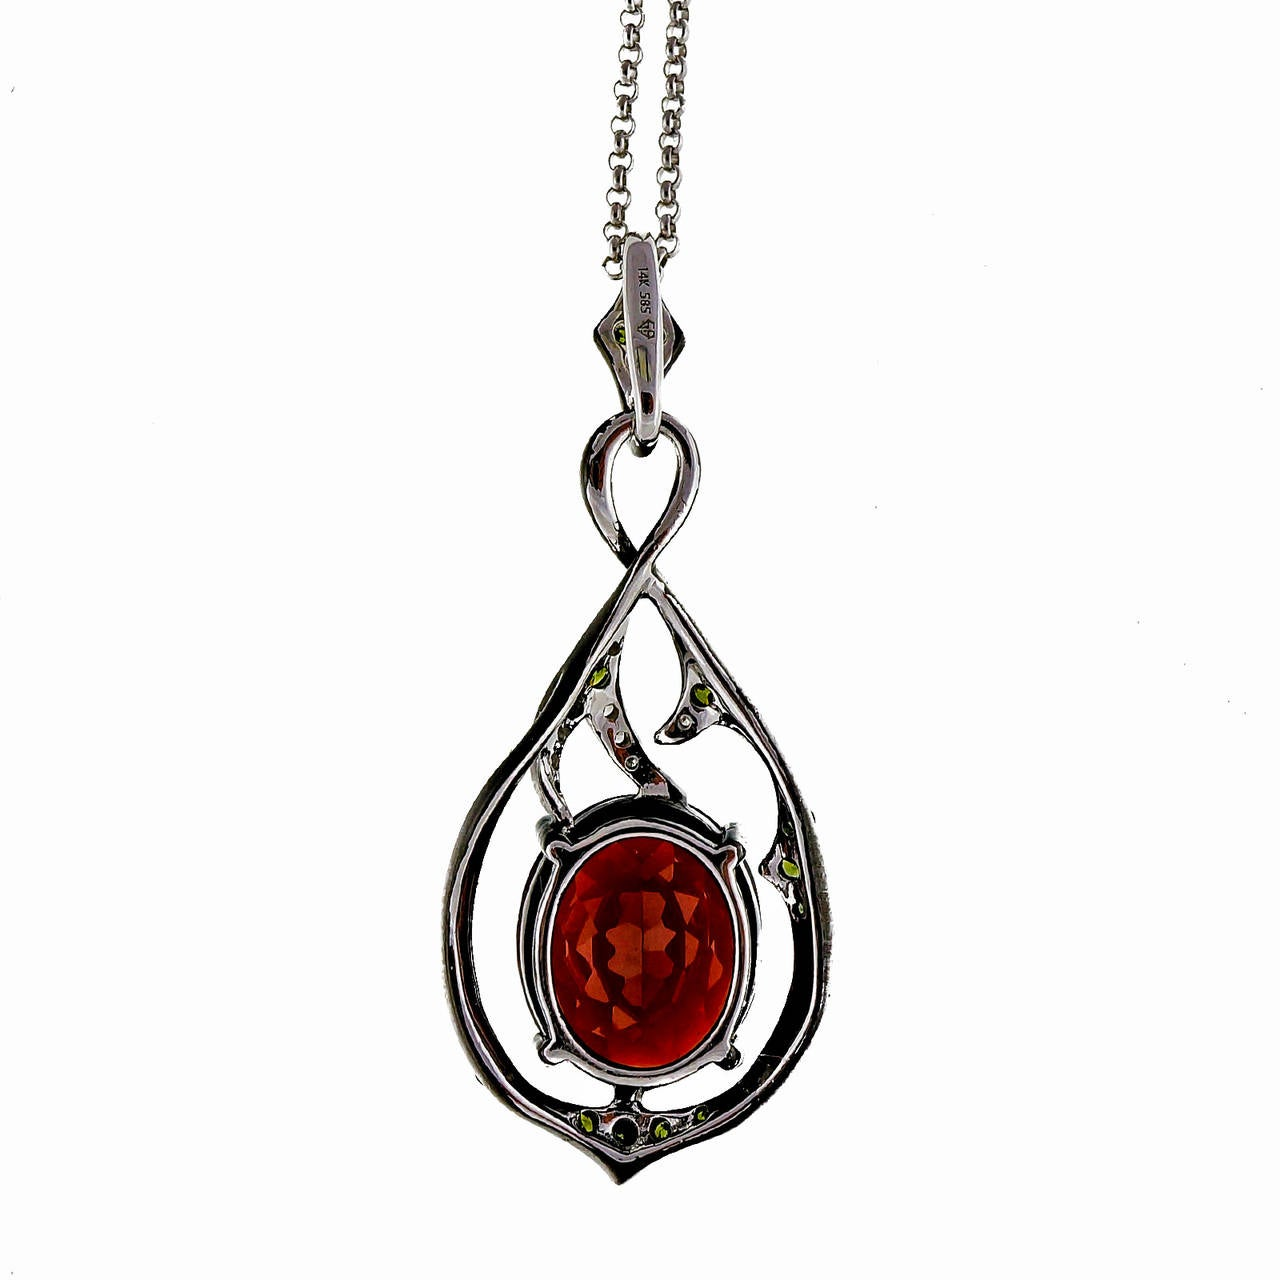 Beautiful blackened white gold swirl pendant with bright red oval Garnet and white and irradiated green diamonds. Circa 1980.  1 oval red Garnet, approx. total weight 5.00cts, SI, 12 x 10mm 15 irradiated light green single cut diamonds, approx.